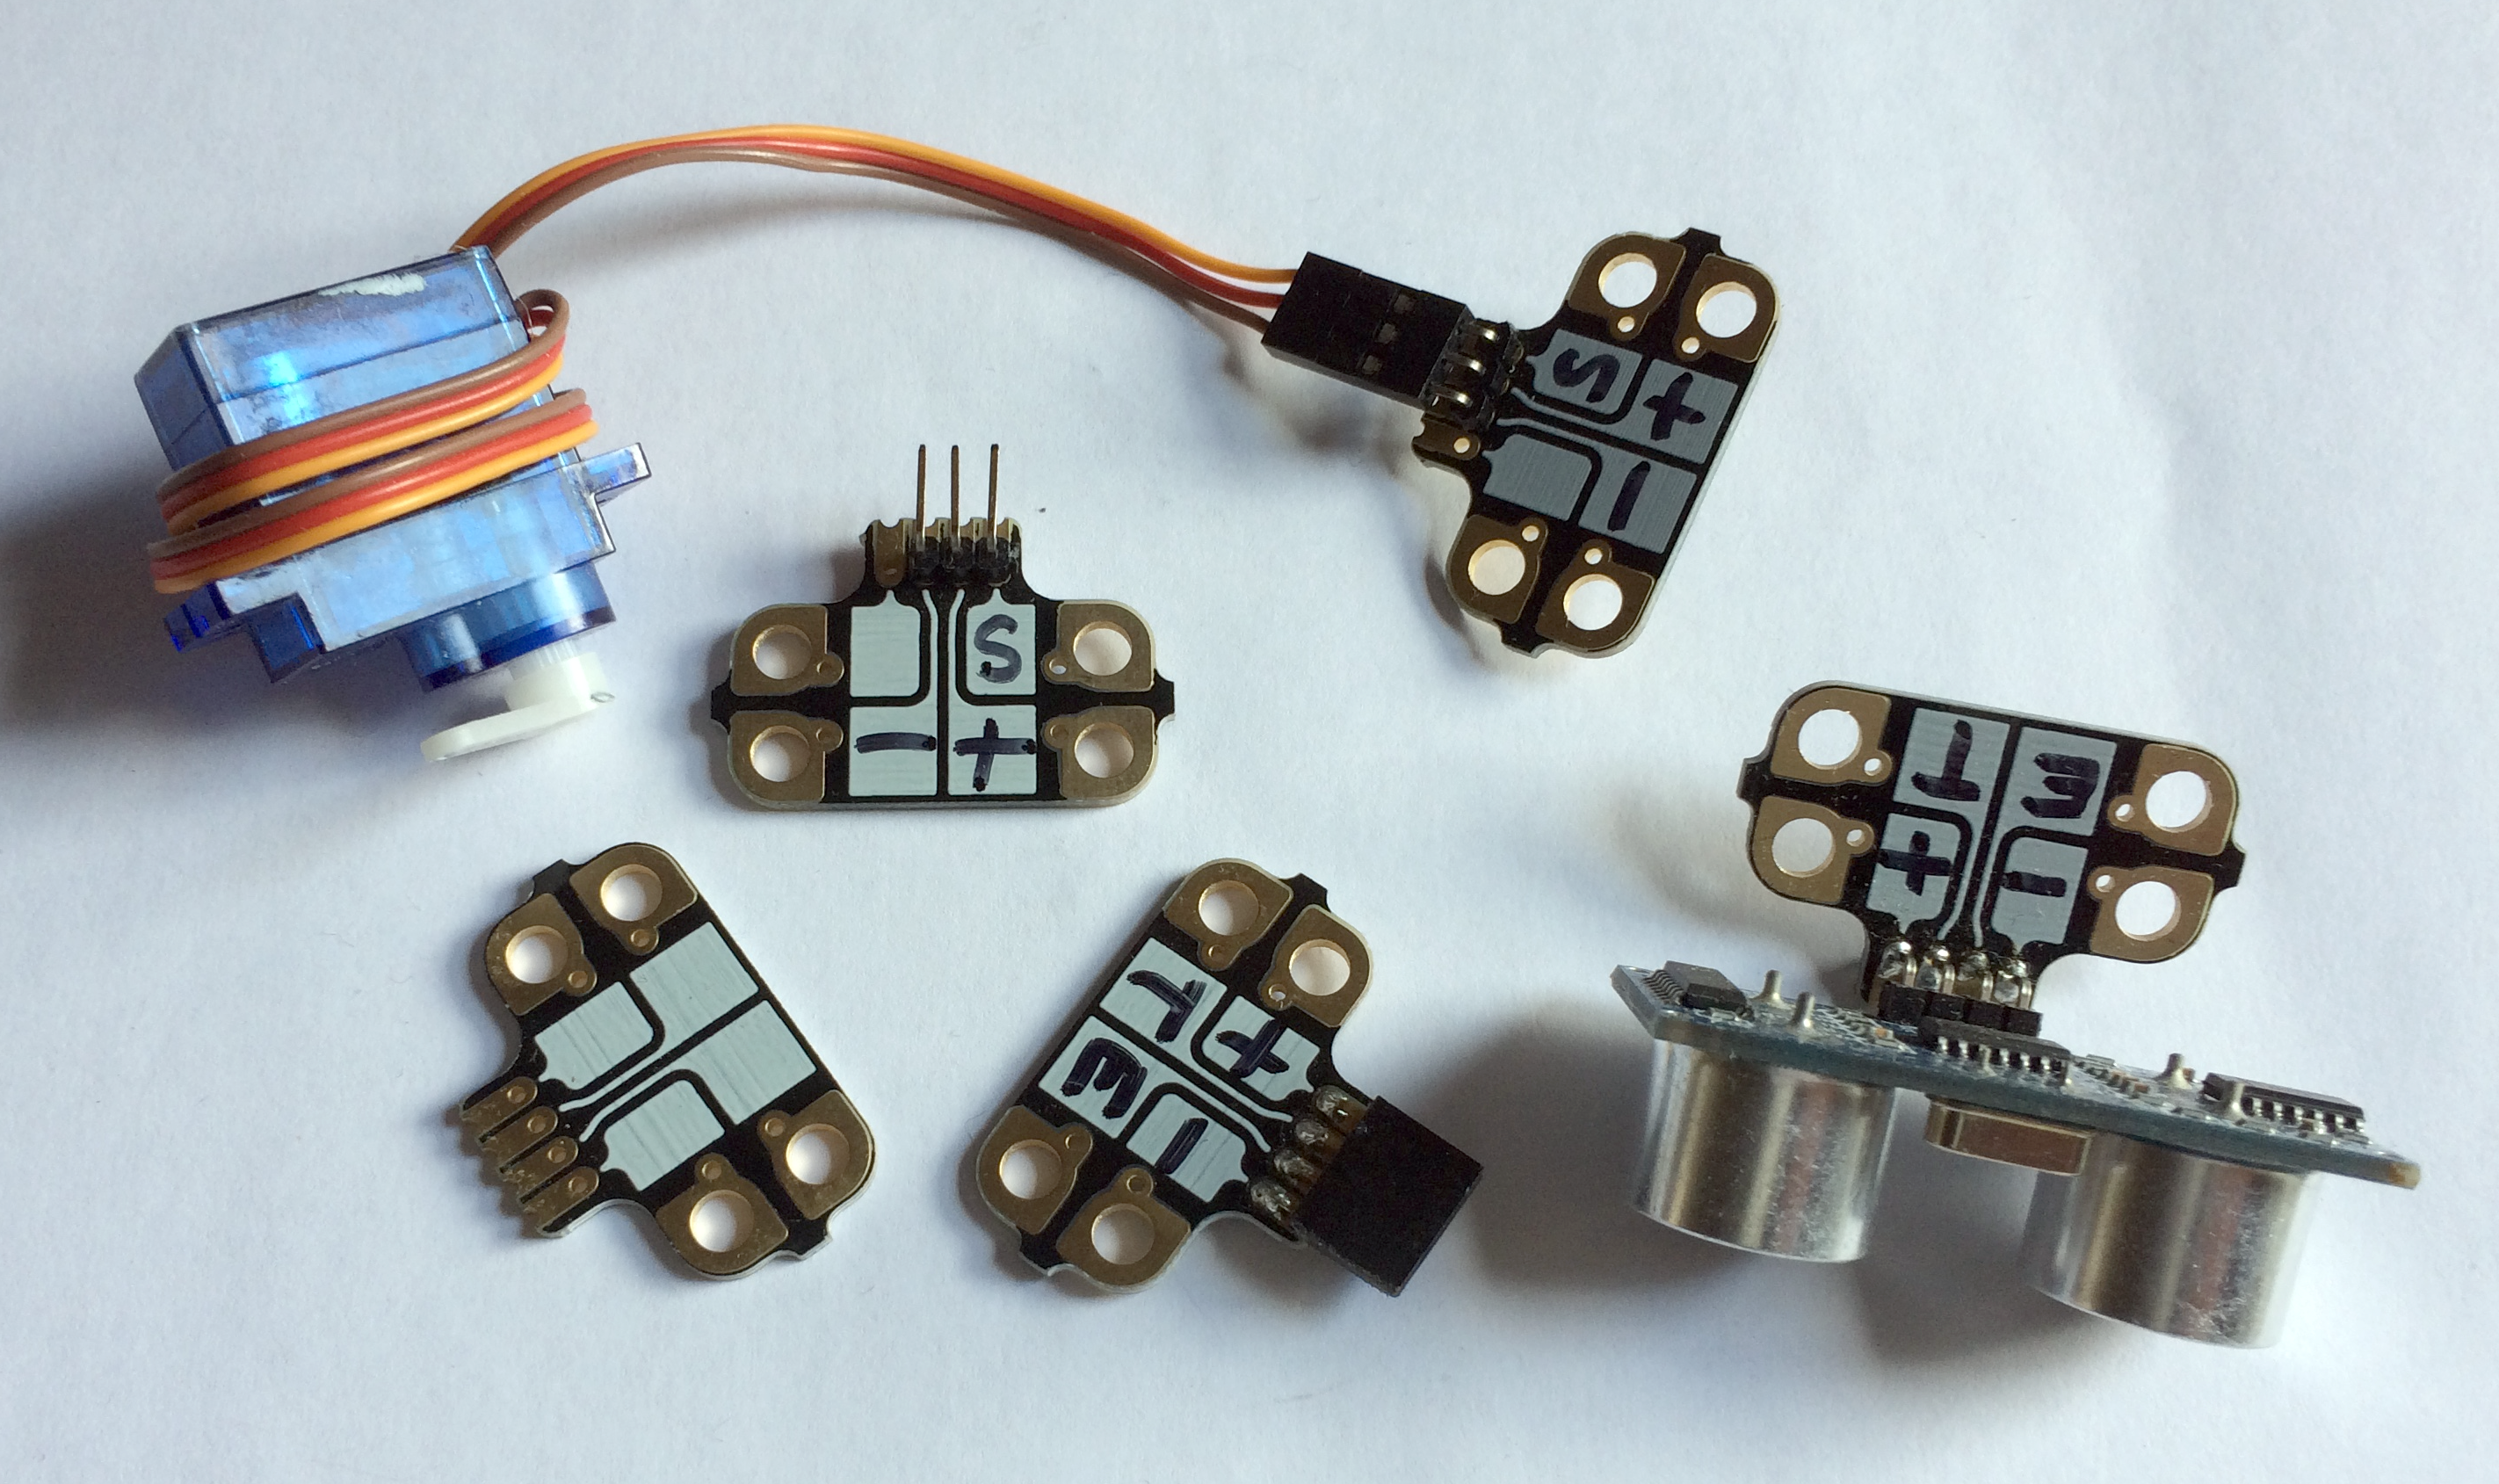 Getting started with Crumble - Use servo motors with your